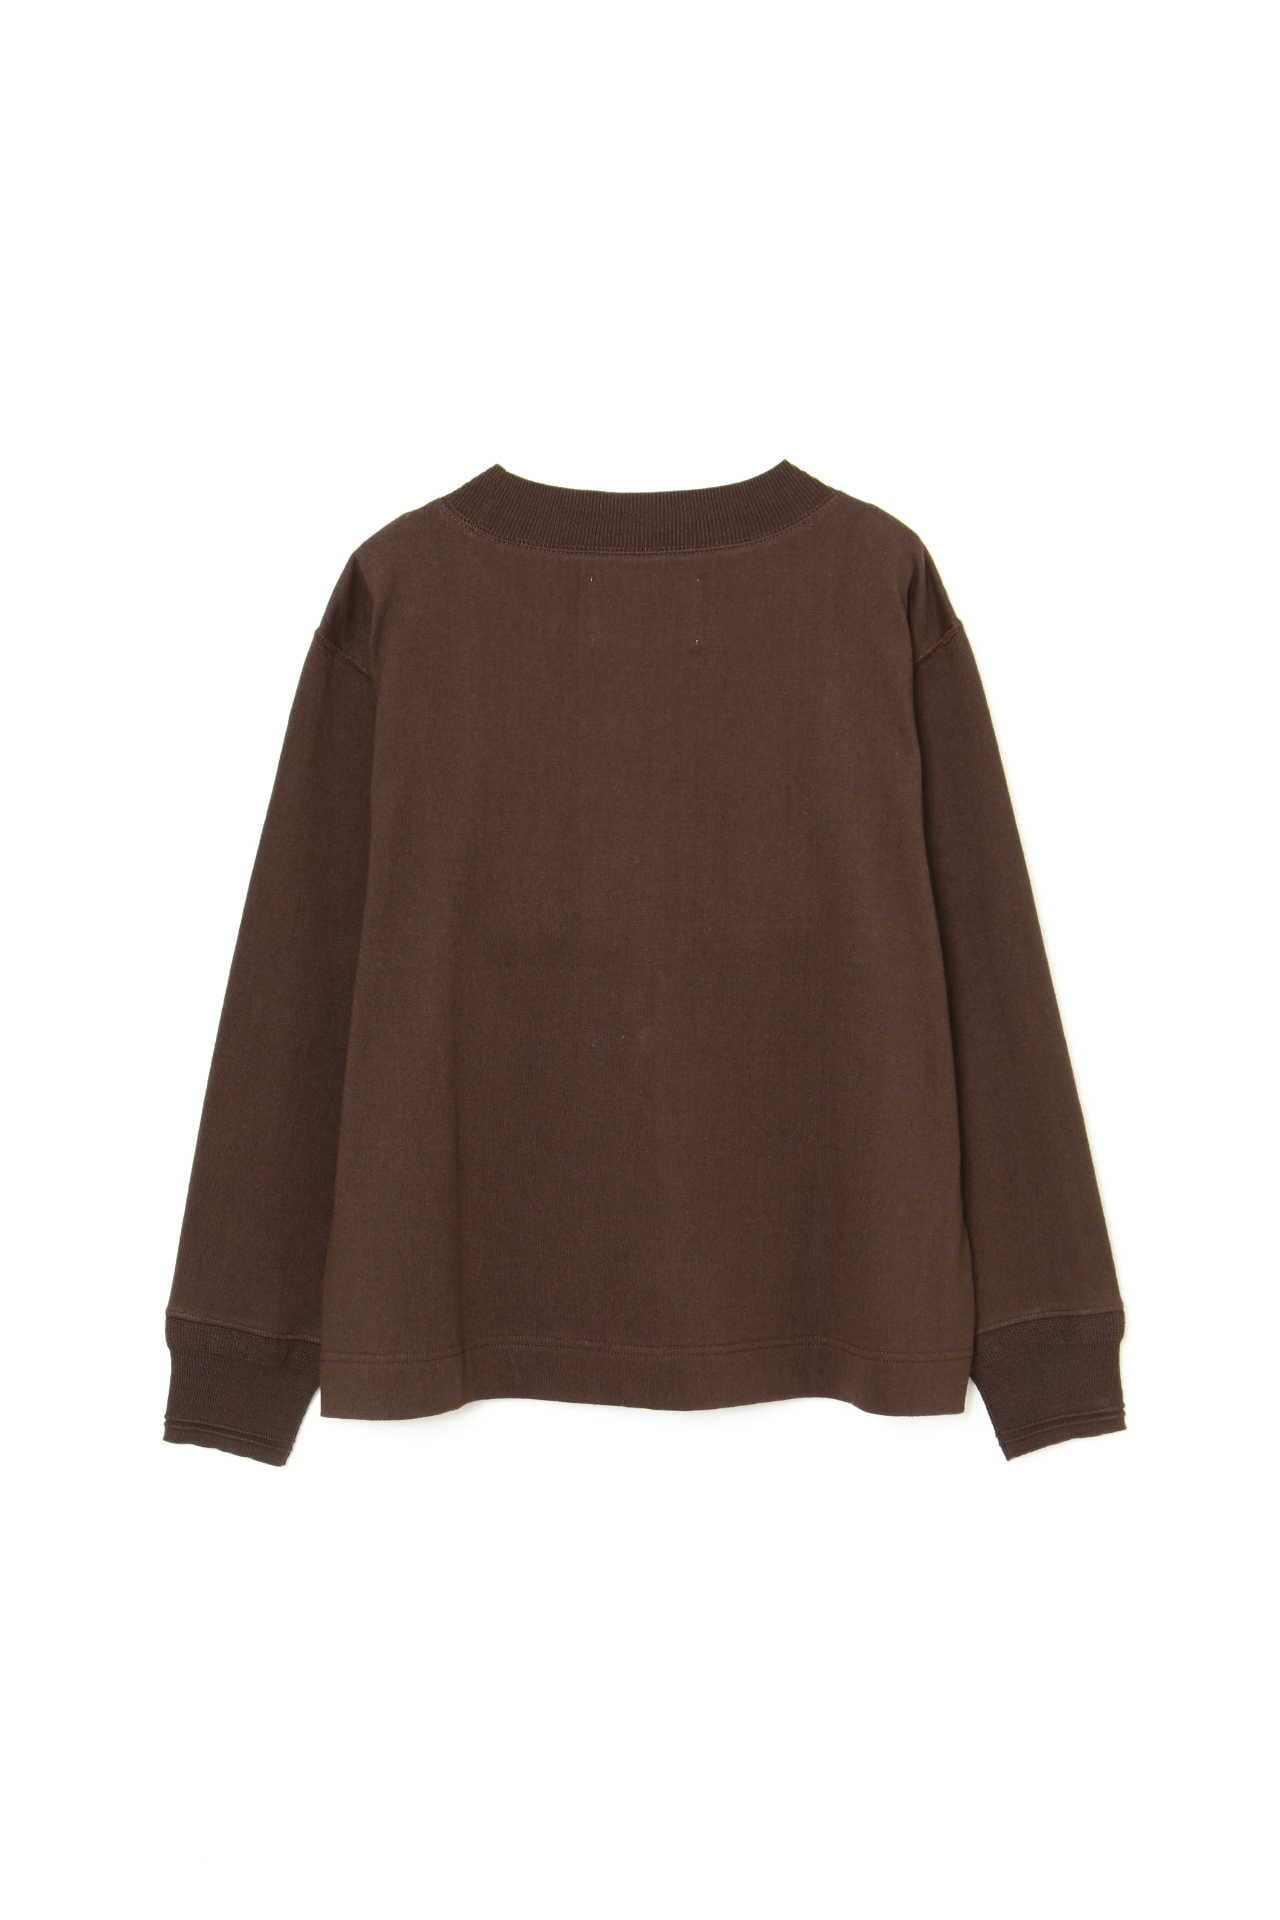 ROUGH COTTON JERSEY(MHL SHOP限定)11